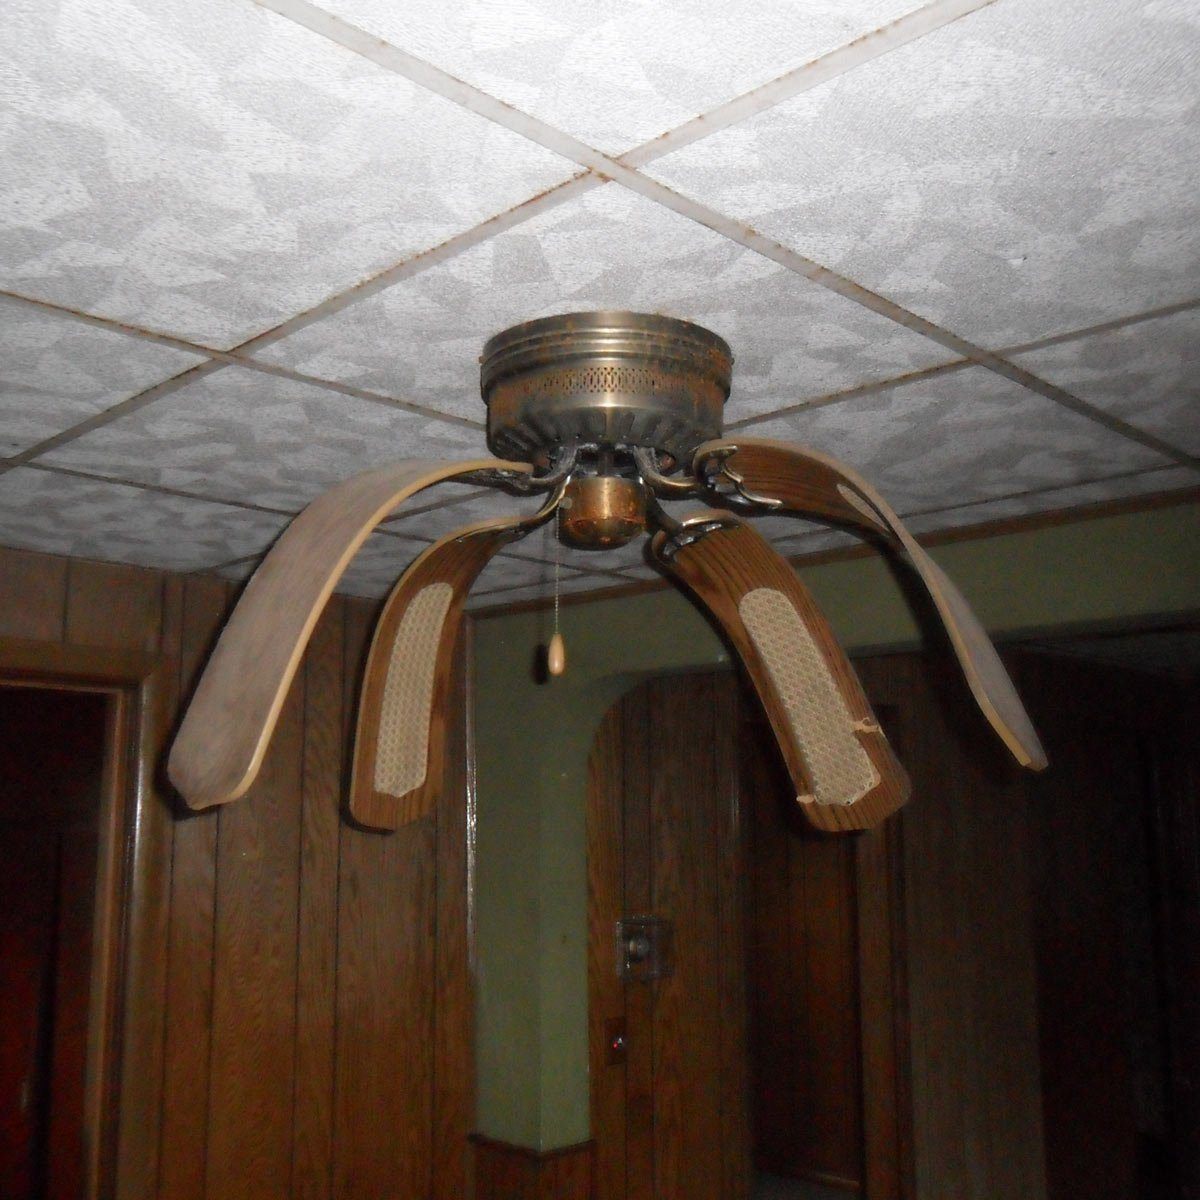 Salvador Dali's Ceiling Fan